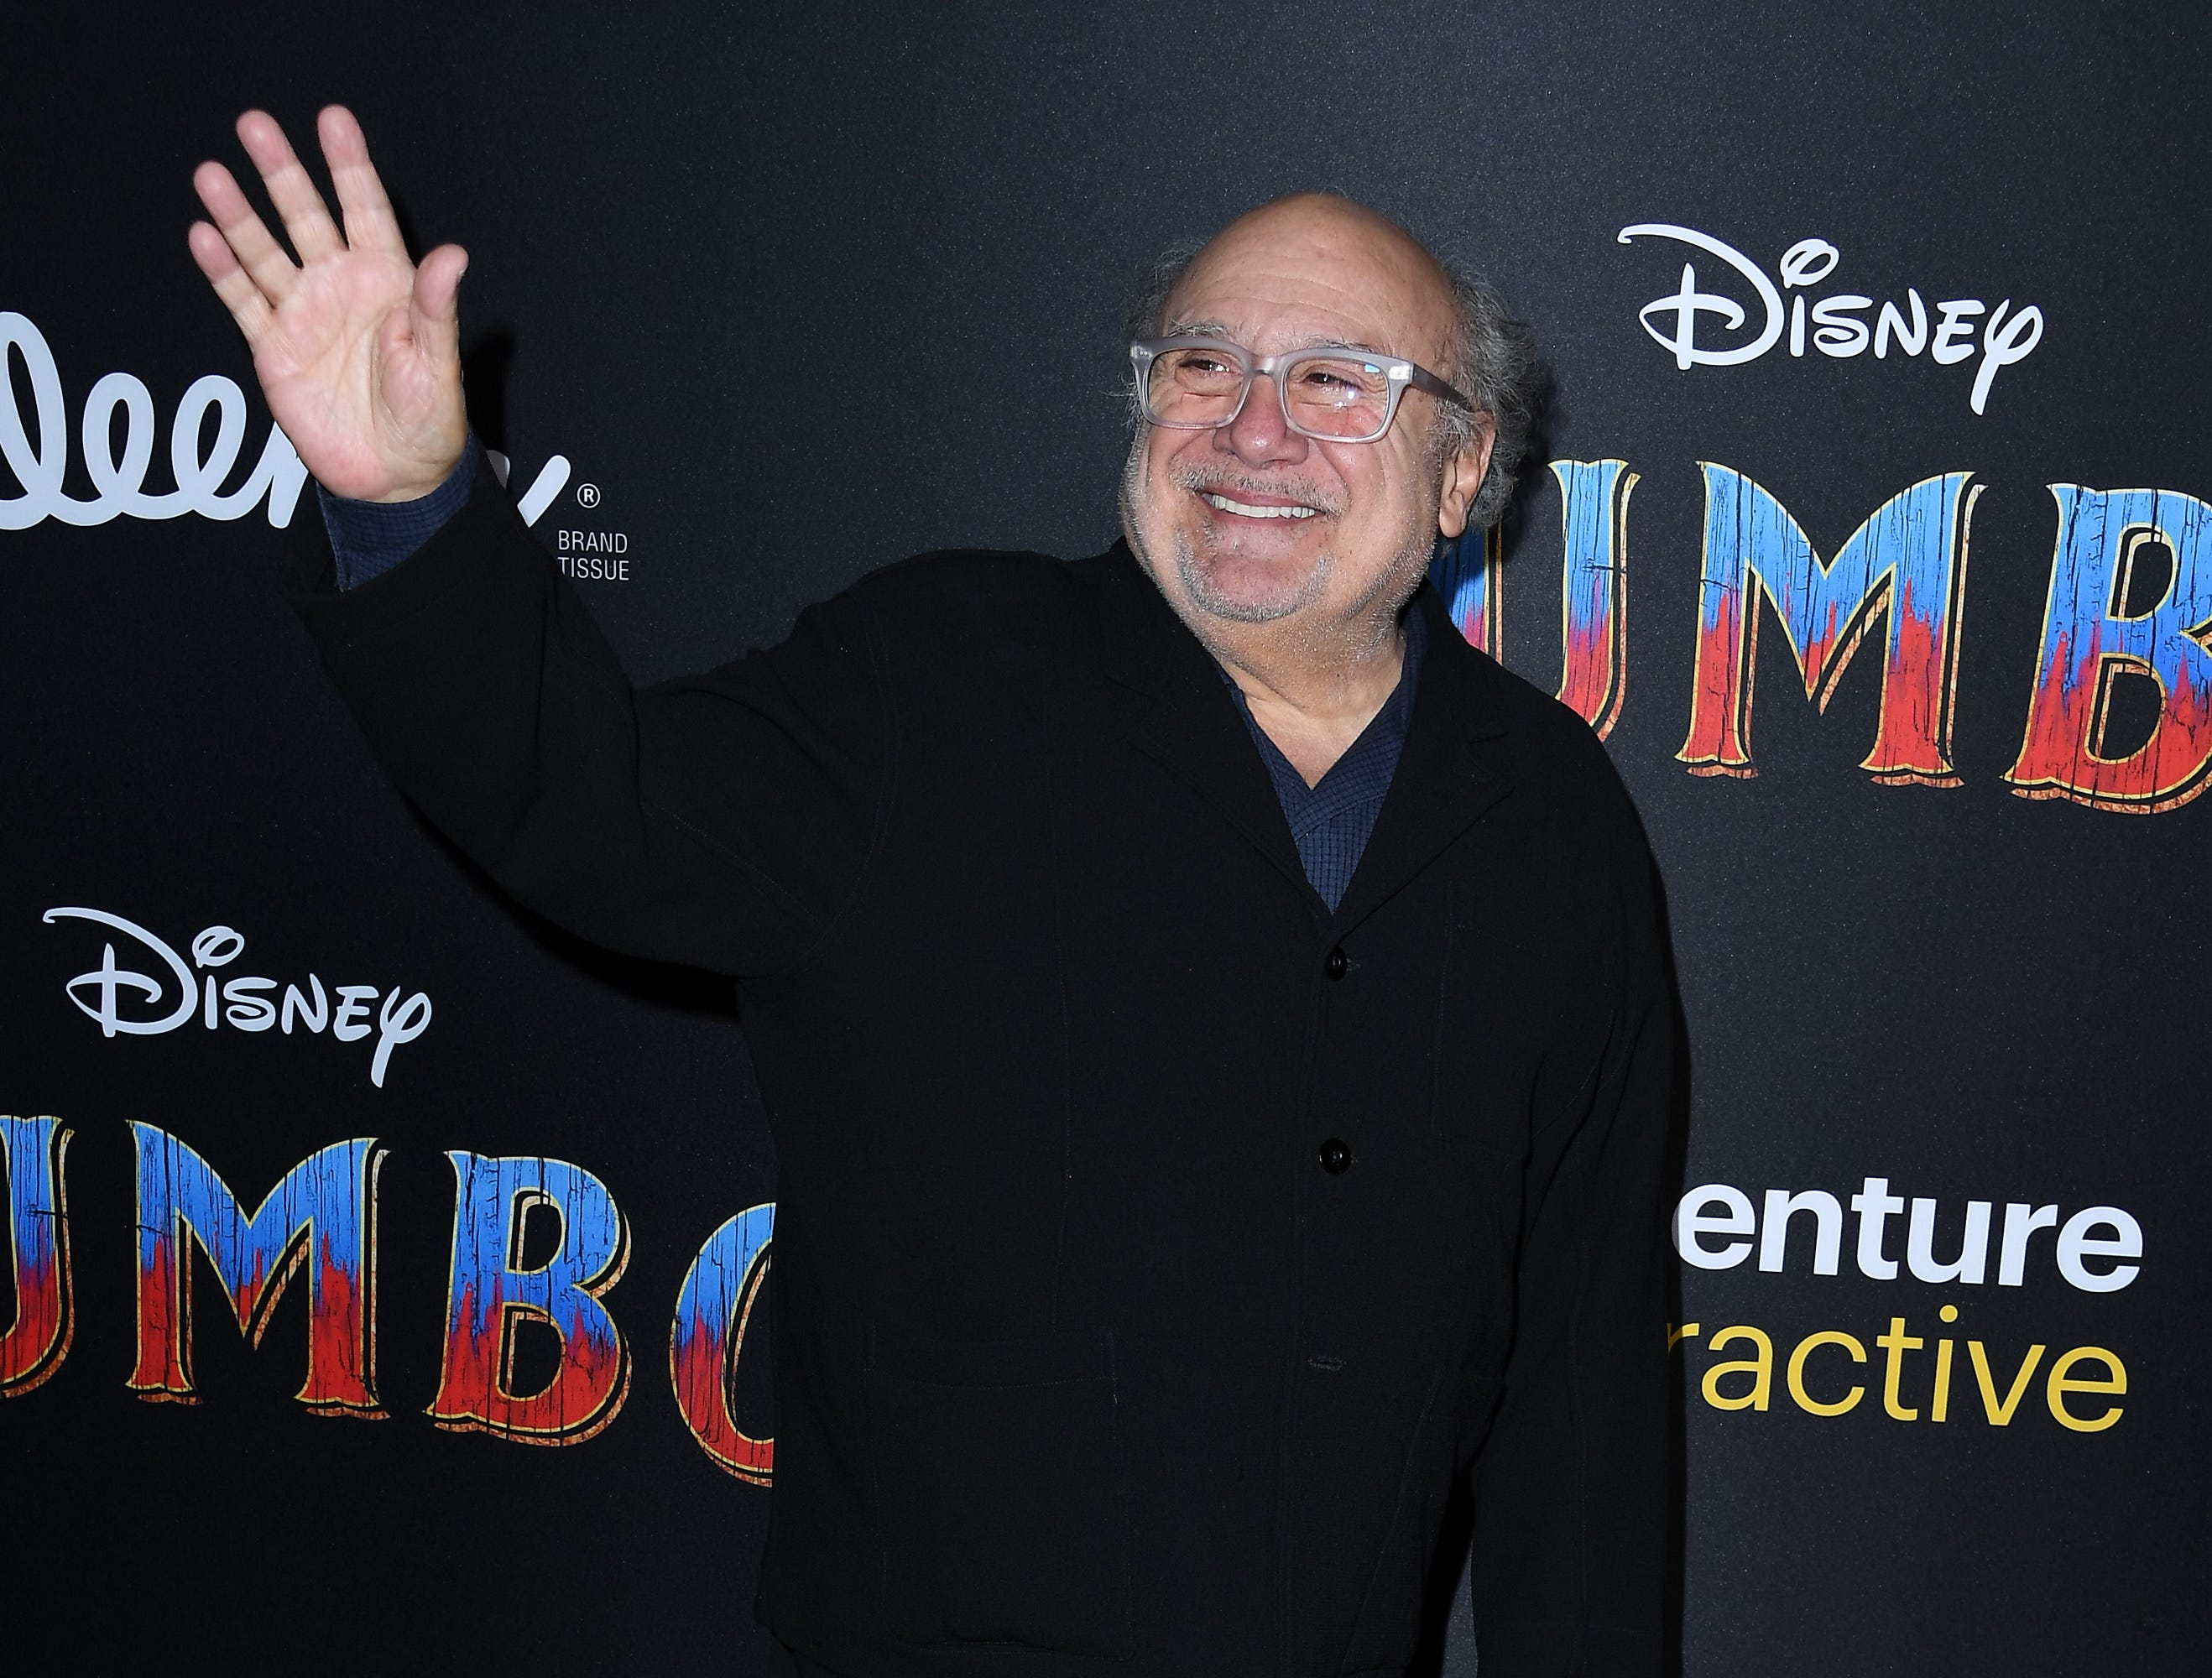 """LOS ANGELES, CALIFORNIA - MARCH 11: Danny DeVito attends the premiere of Disney's """"Dumbo"""" at El Capitan Theatre on March 11, 2019 in Los Angeles, California. (Photo by Steve Granitz/WireImage) ORG XMIT: 775305572 ORIG FILE ID: 1135219941"""